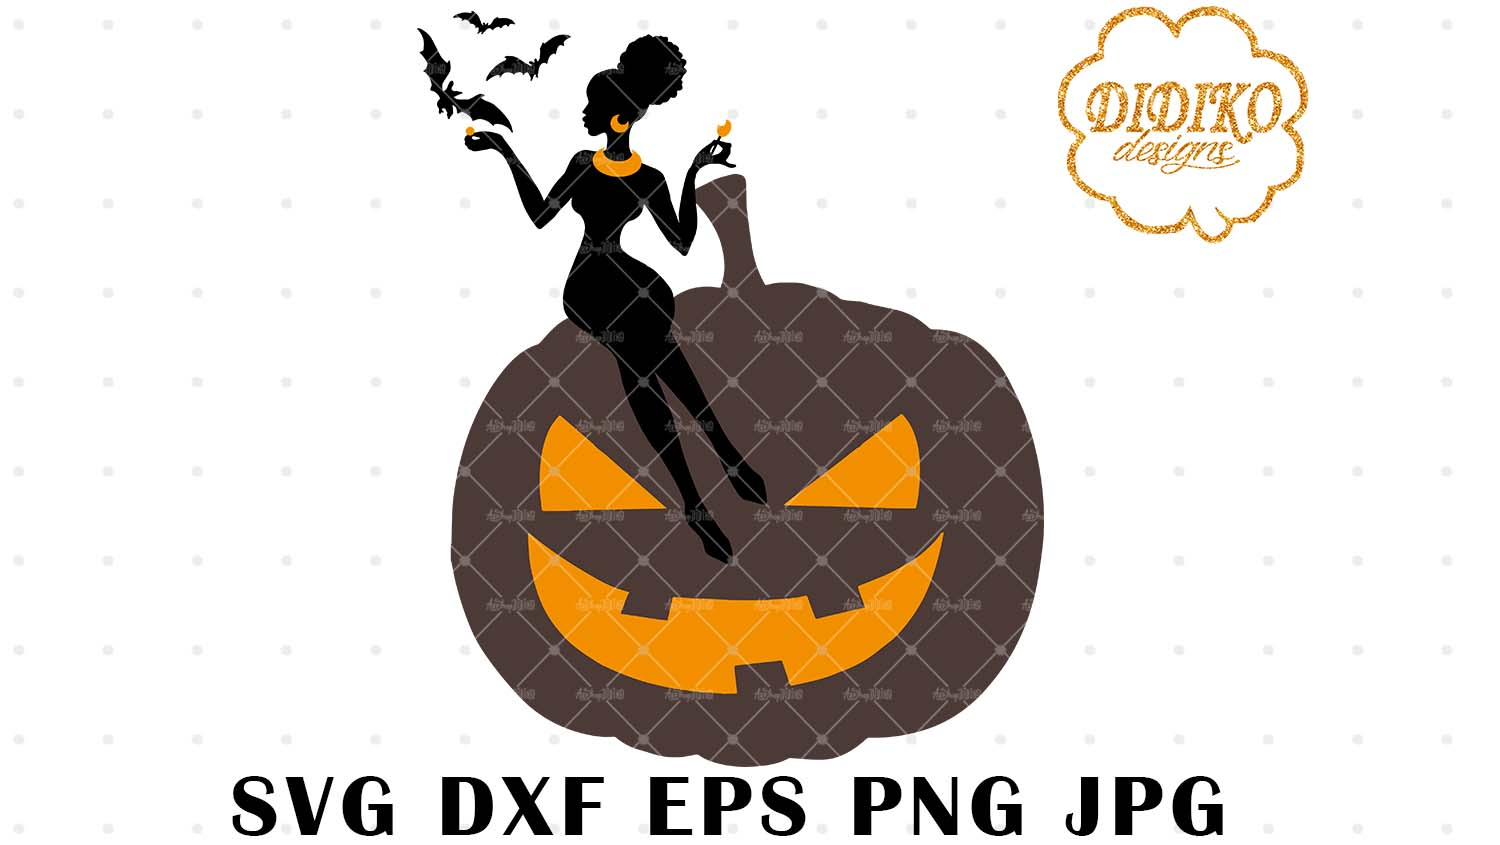 African American Boss Lady Svg 3 Halloween Svg Didiko Designs